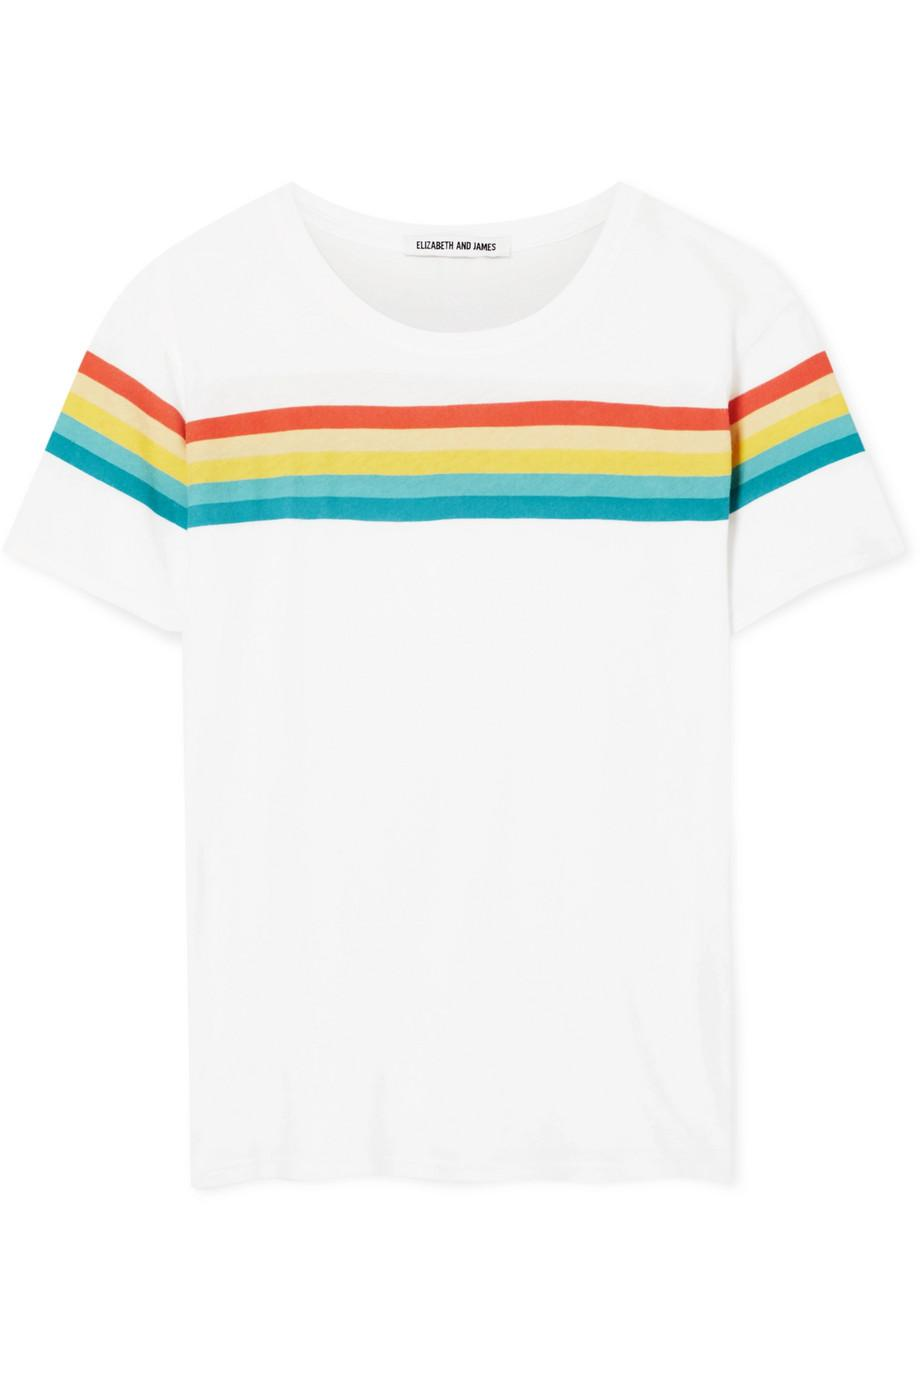 Lakota Striped Cotton-jersey T-shirt - White Elizabeth & James Cheap Wide Range Of 2018 Newest Sale Online Reliable For Sale Extremely Limited Edition Cheap Price 3tt0U9lc